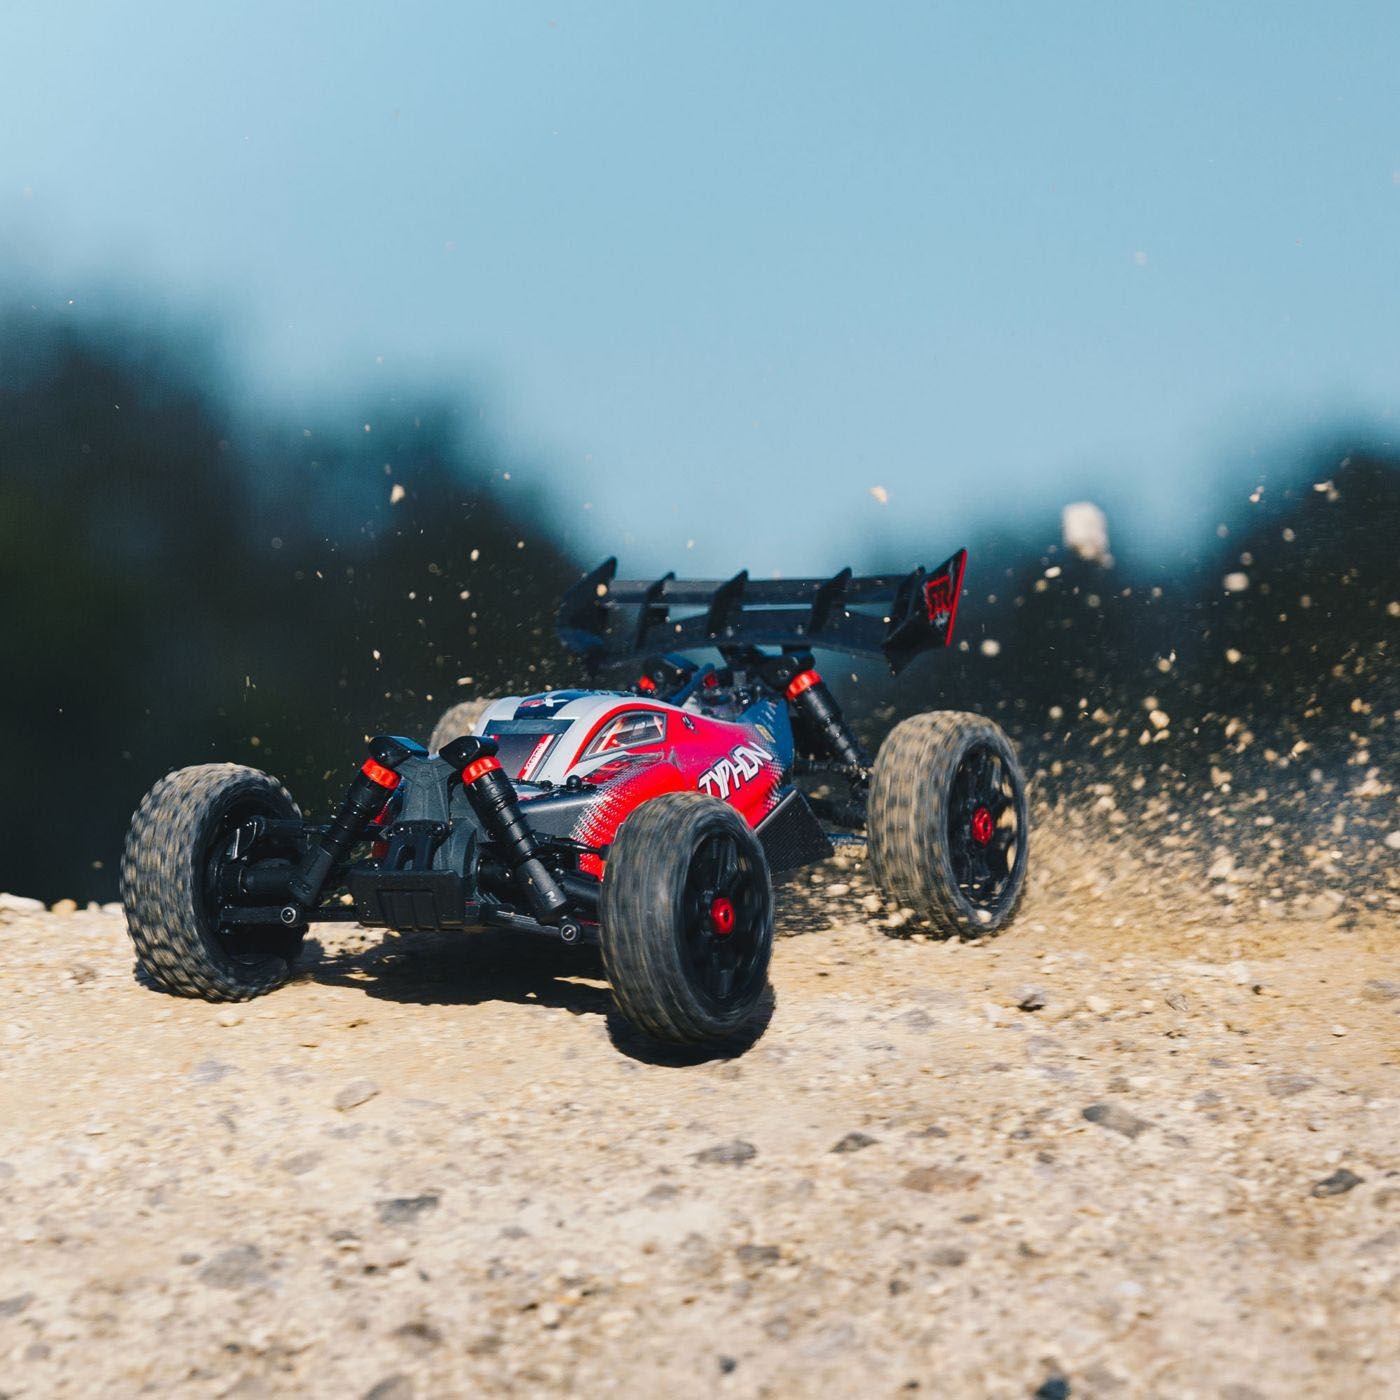 Arrma Typhon 3s Brushless 4wd Buggy rtr 10